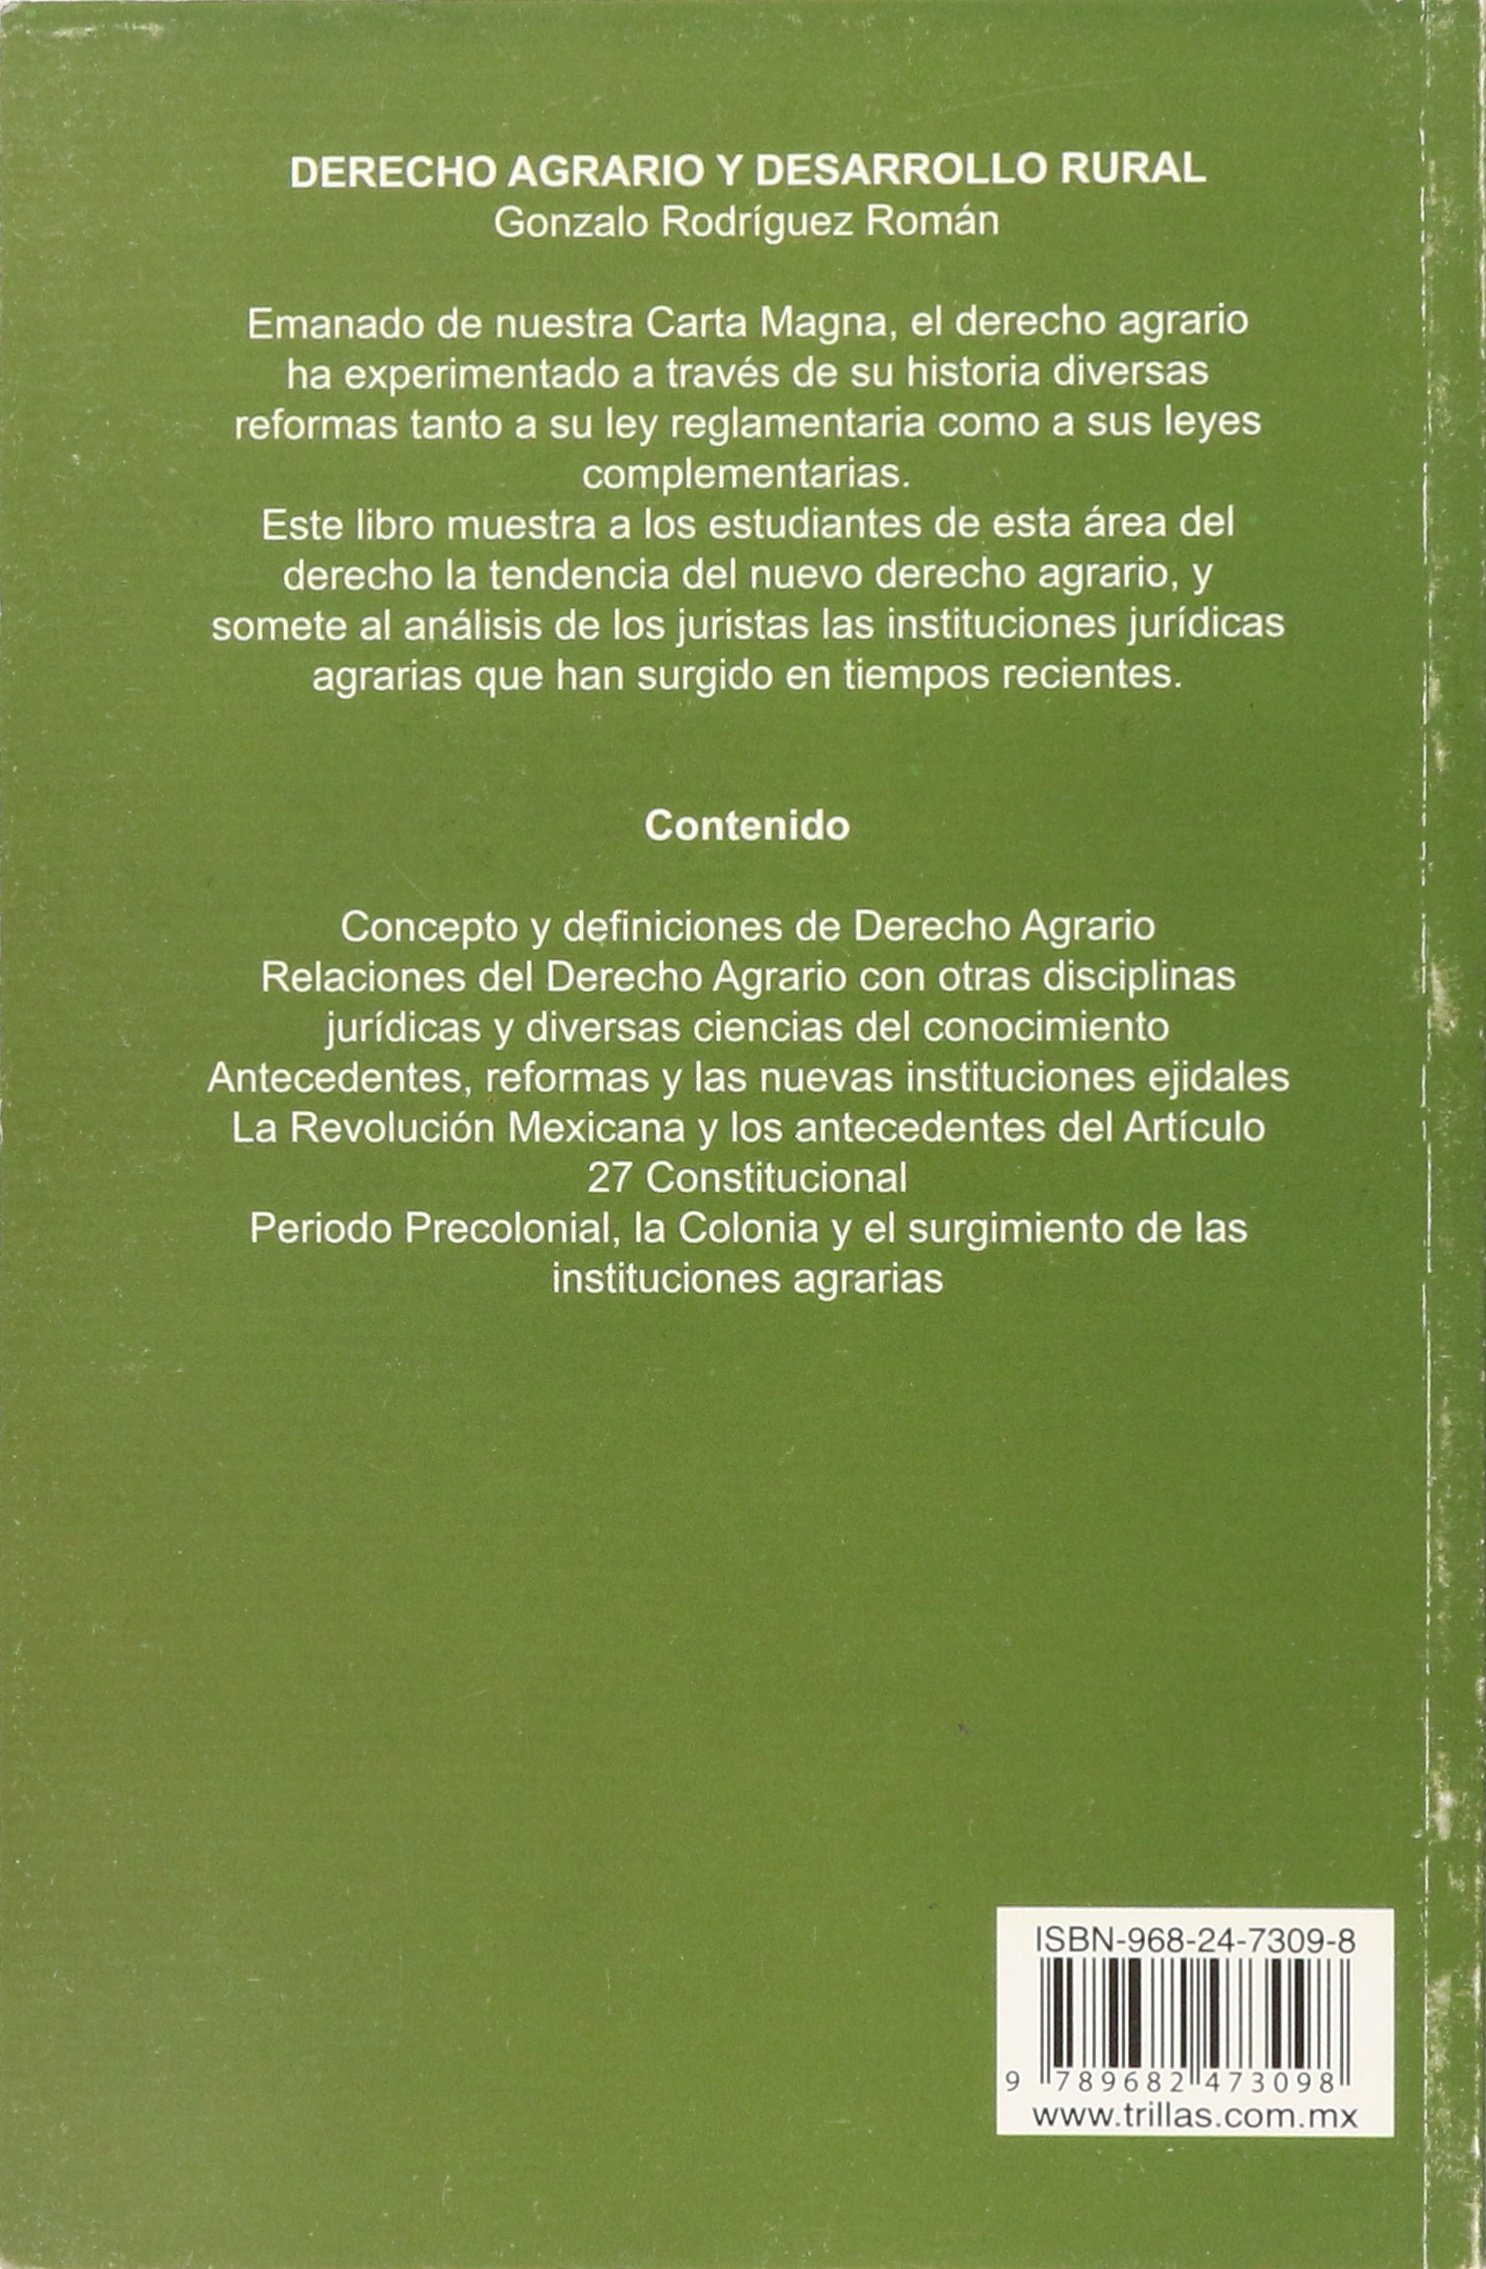 Derecho agrario y desarrollo rural/Agricultural law and rural development: Amazon.es: Gonzalo Rodriguez Roman: Libros